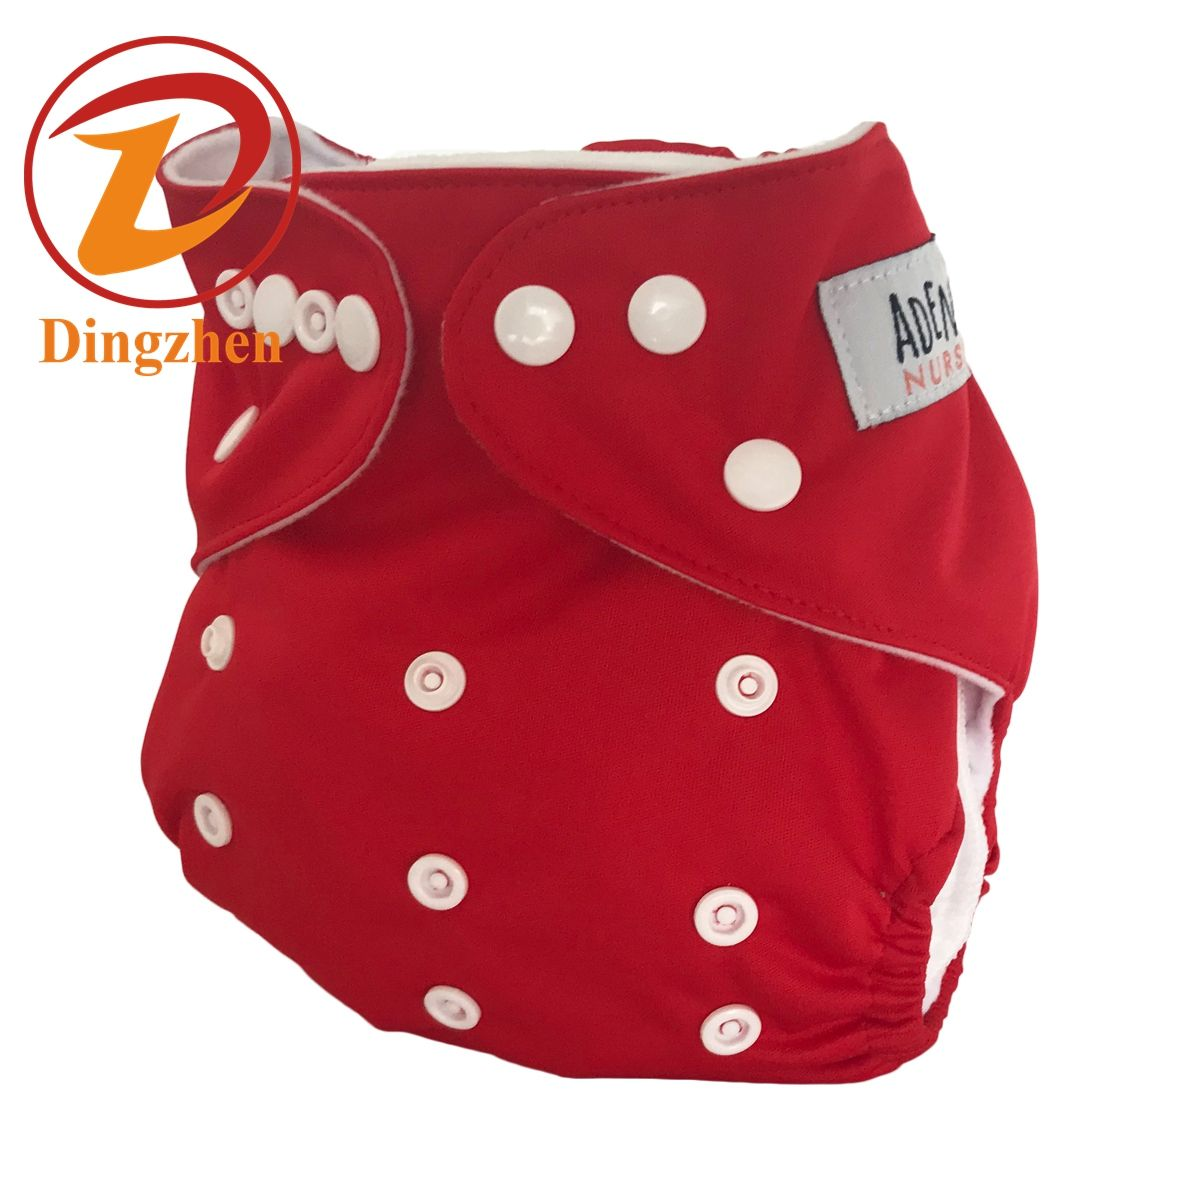 Solid Color Baby diapers Soft Breathable Qrganic High Quality Waterproof Pocket Cloth diaper